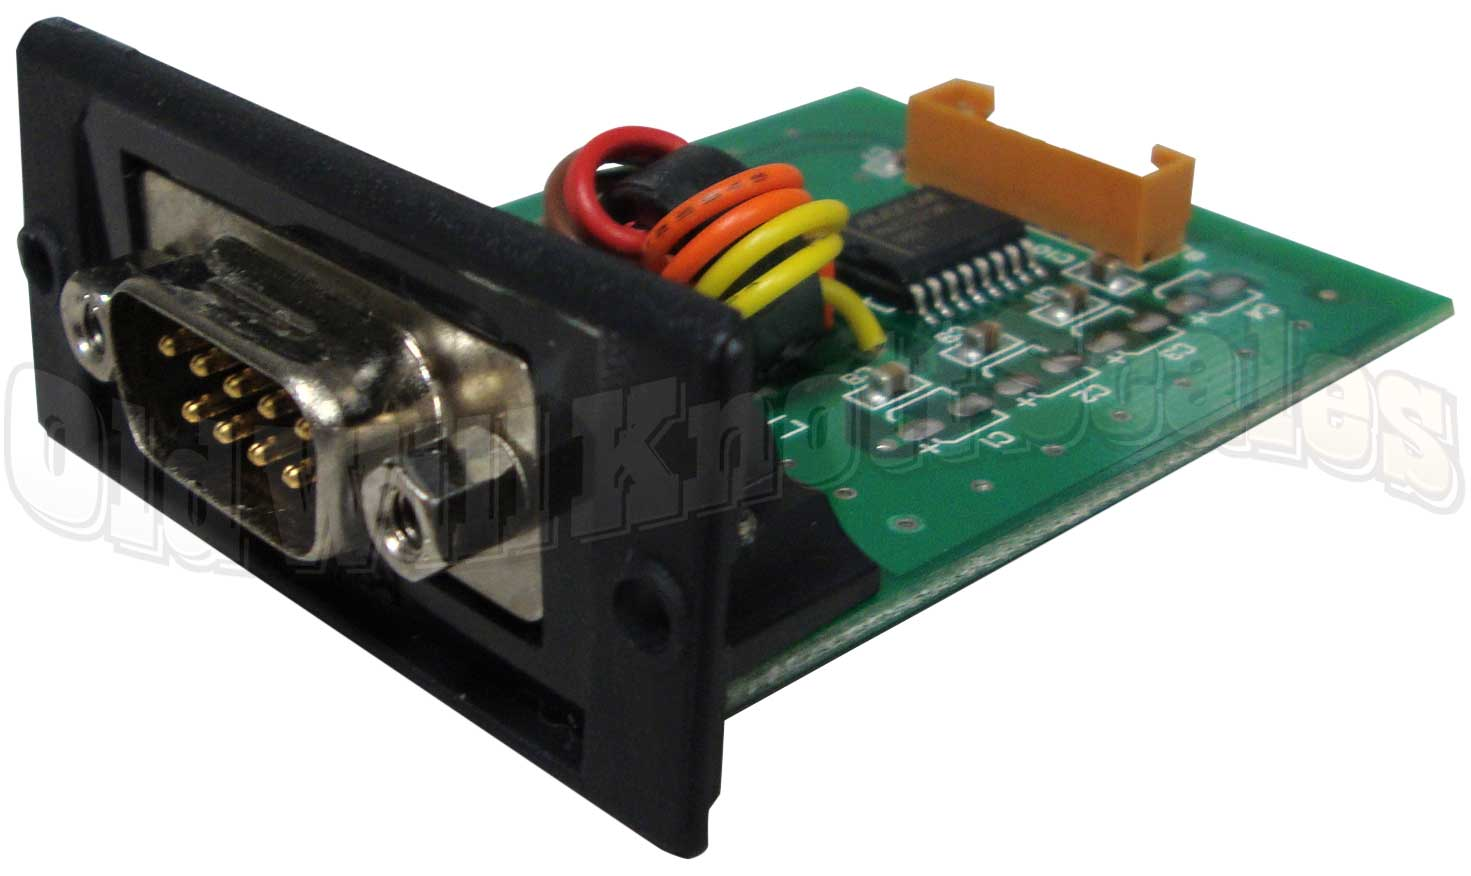 A&D EJ-03 RS232 Interface With 9-Pin to 9-Pin Cable